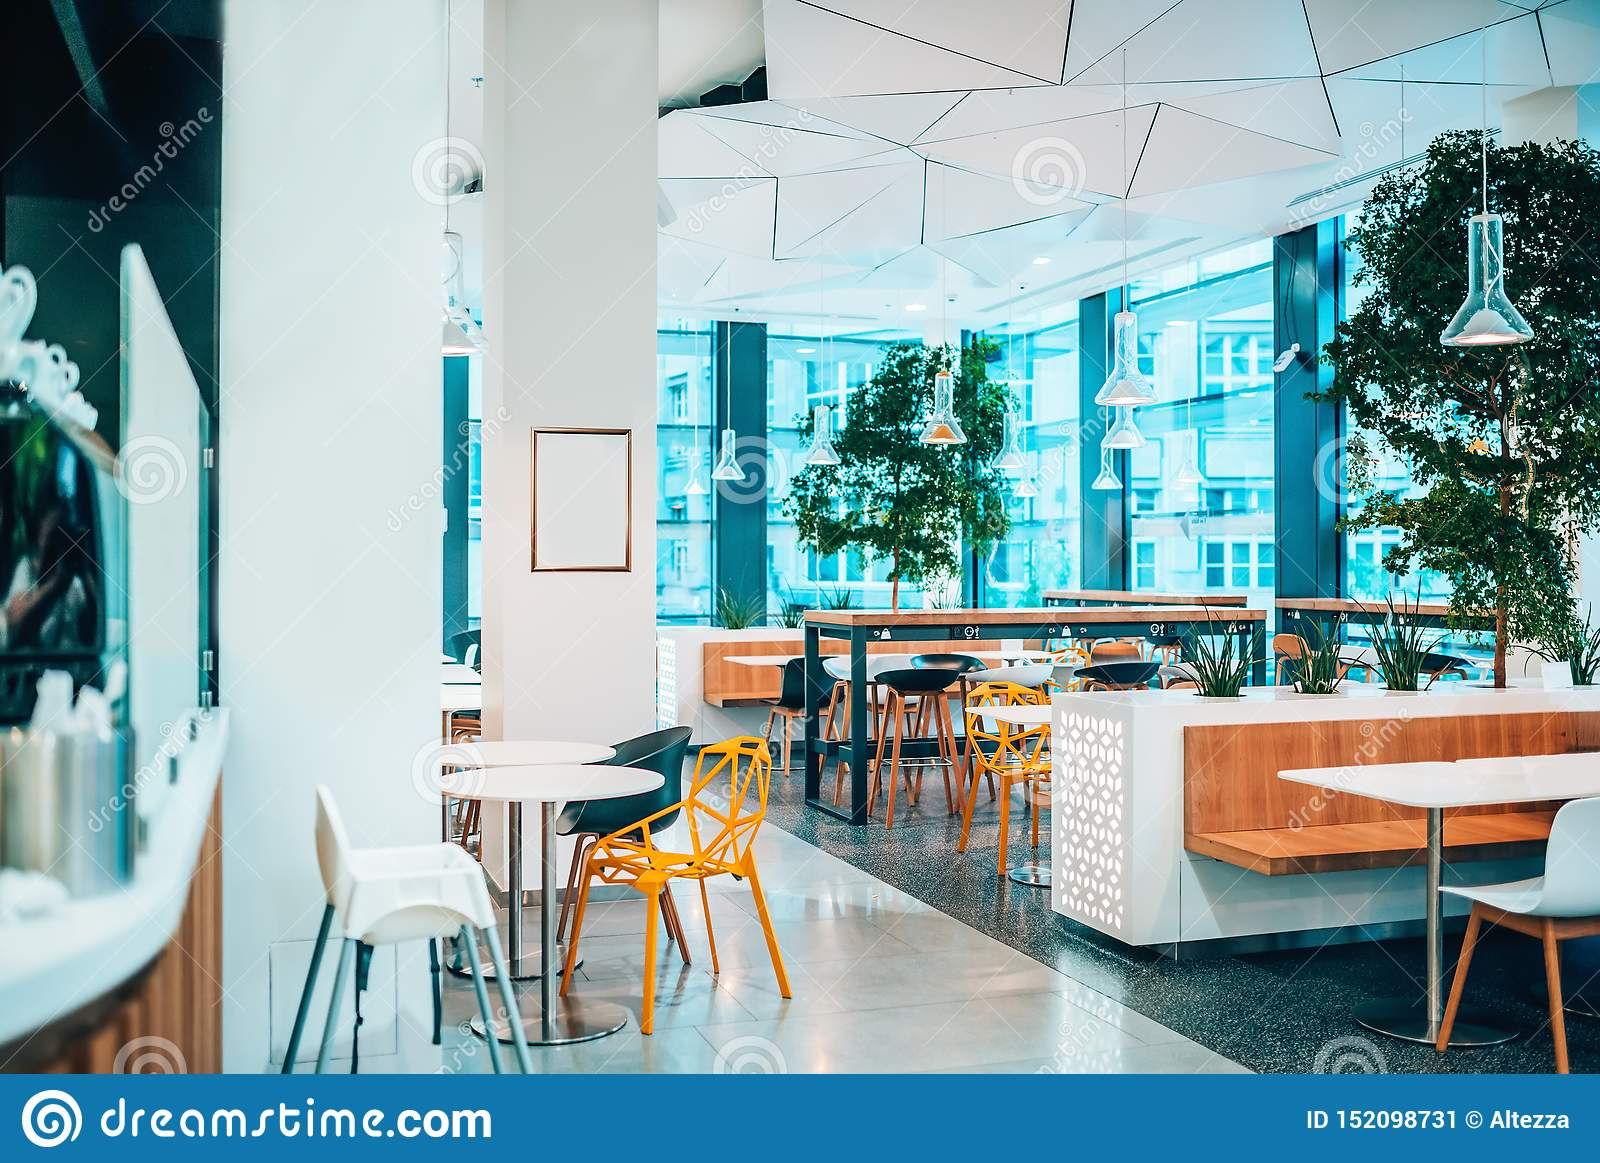 Bright And Modern Interior Of Cafe Restaurant With Copy Space Stock Image Image Of Republic Windows 152098731